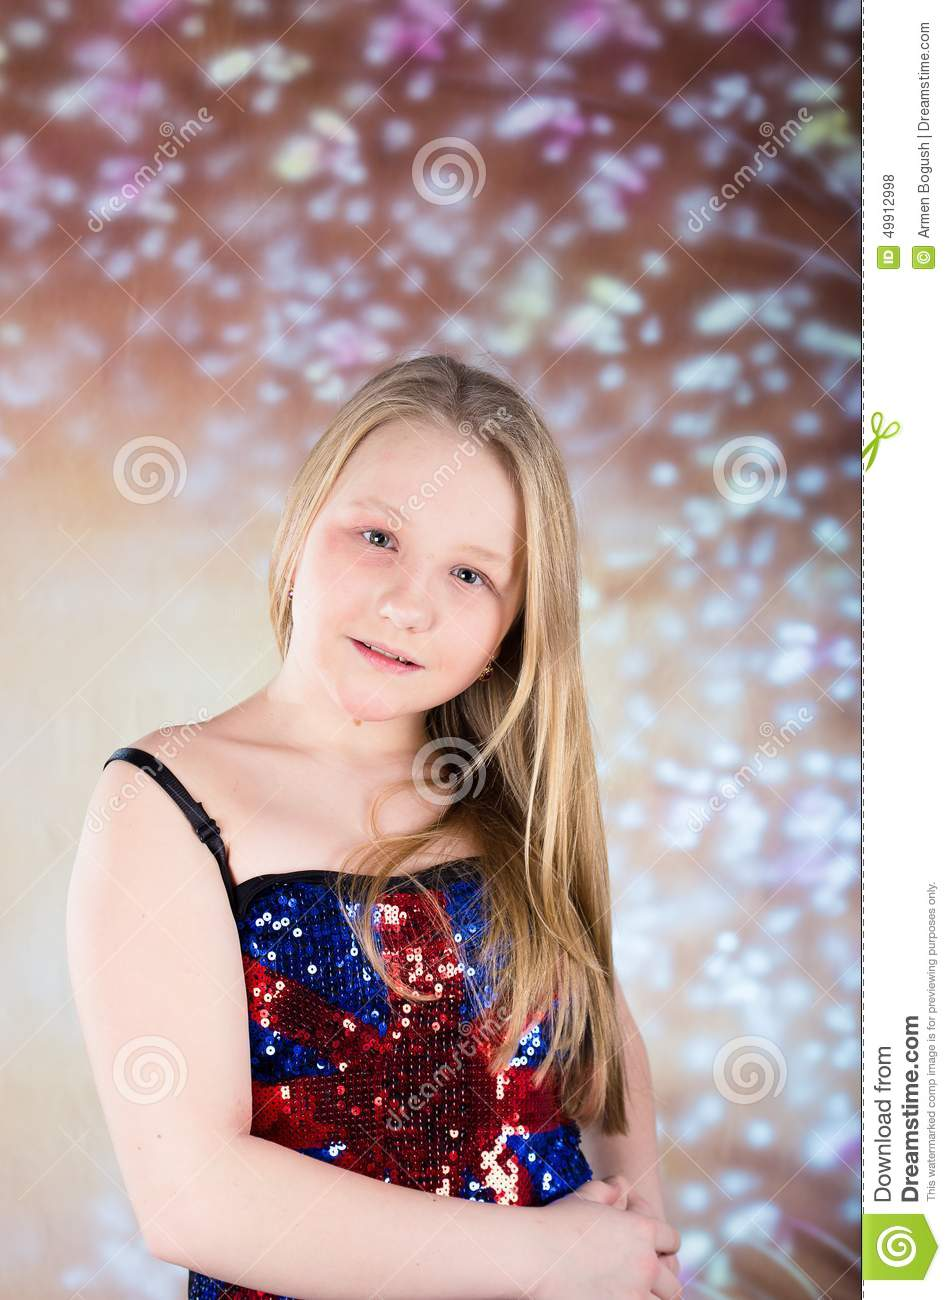 Beautiful Teen Girl In Party Dress With High Heels Stock Photo Image Of Cheerful Heel 49912998